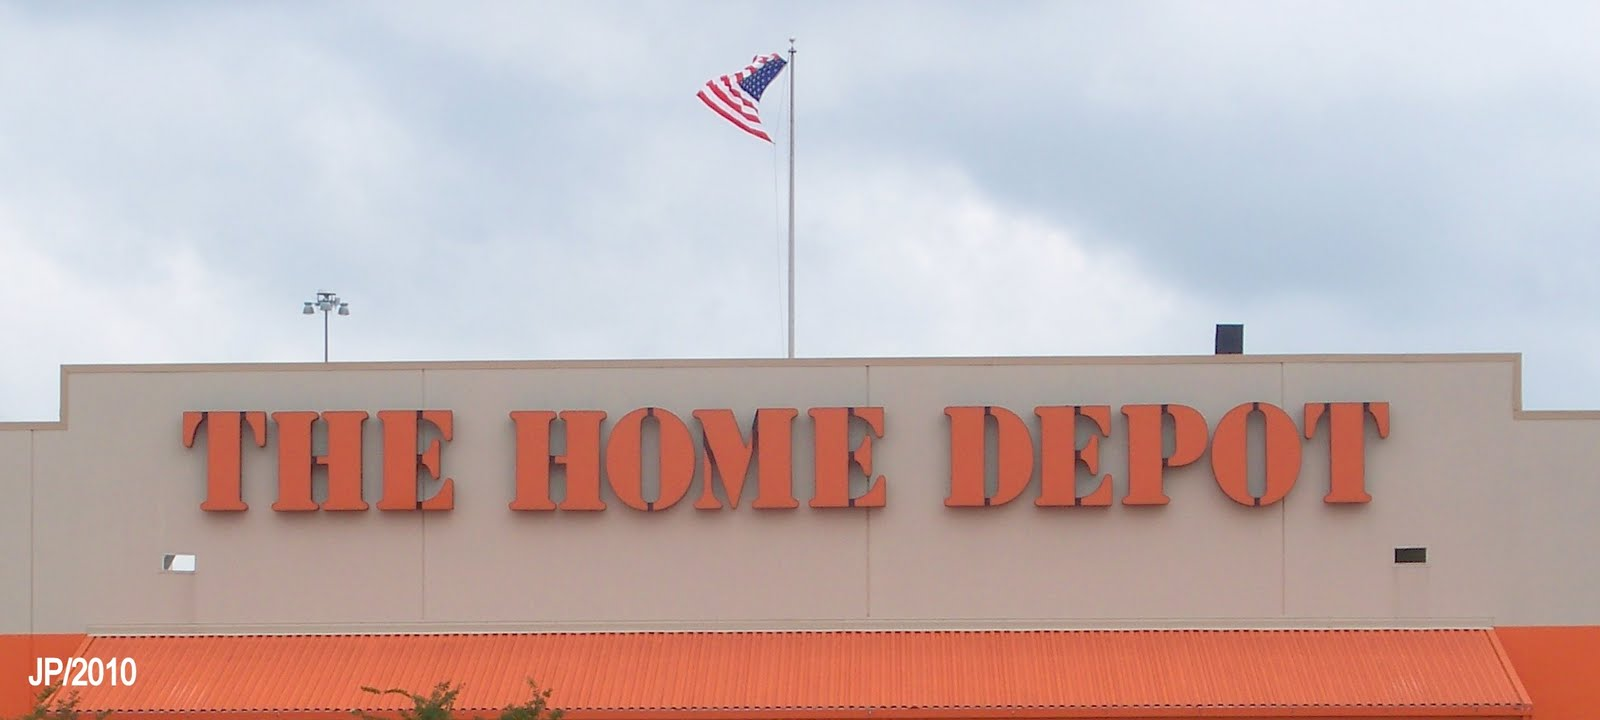 HOME DEPOT STORE JACKSONVILLE FLORIDA Lumber Building MaterialsPaint Hardware Store JAX Duval County FL